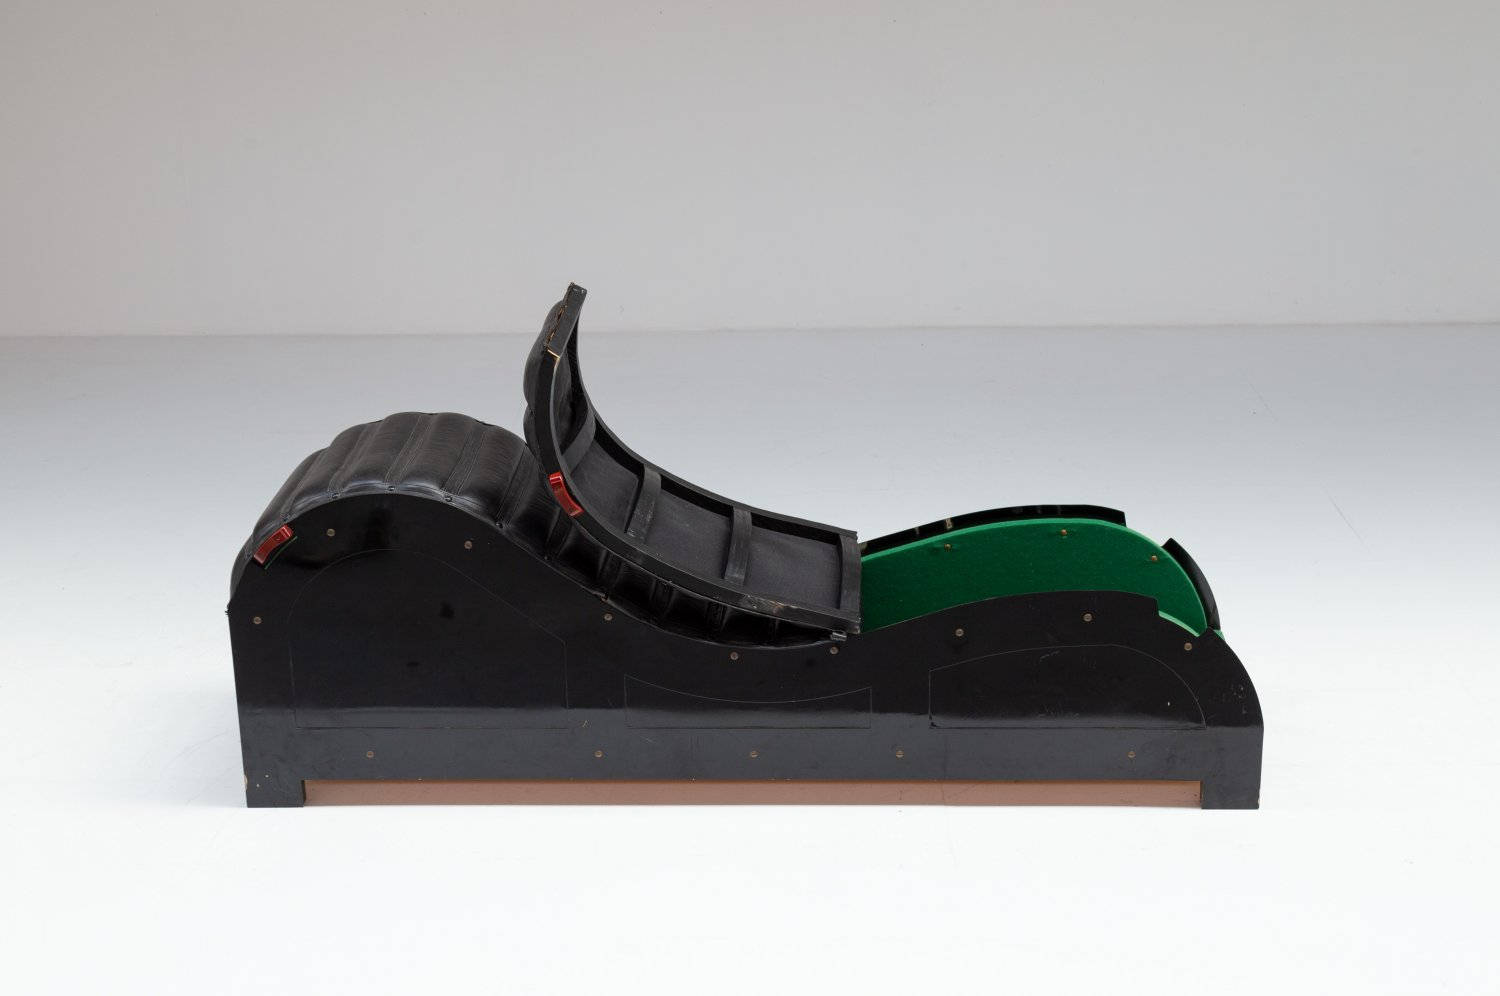 Mats Theselius 'Chaise Longue' 1992